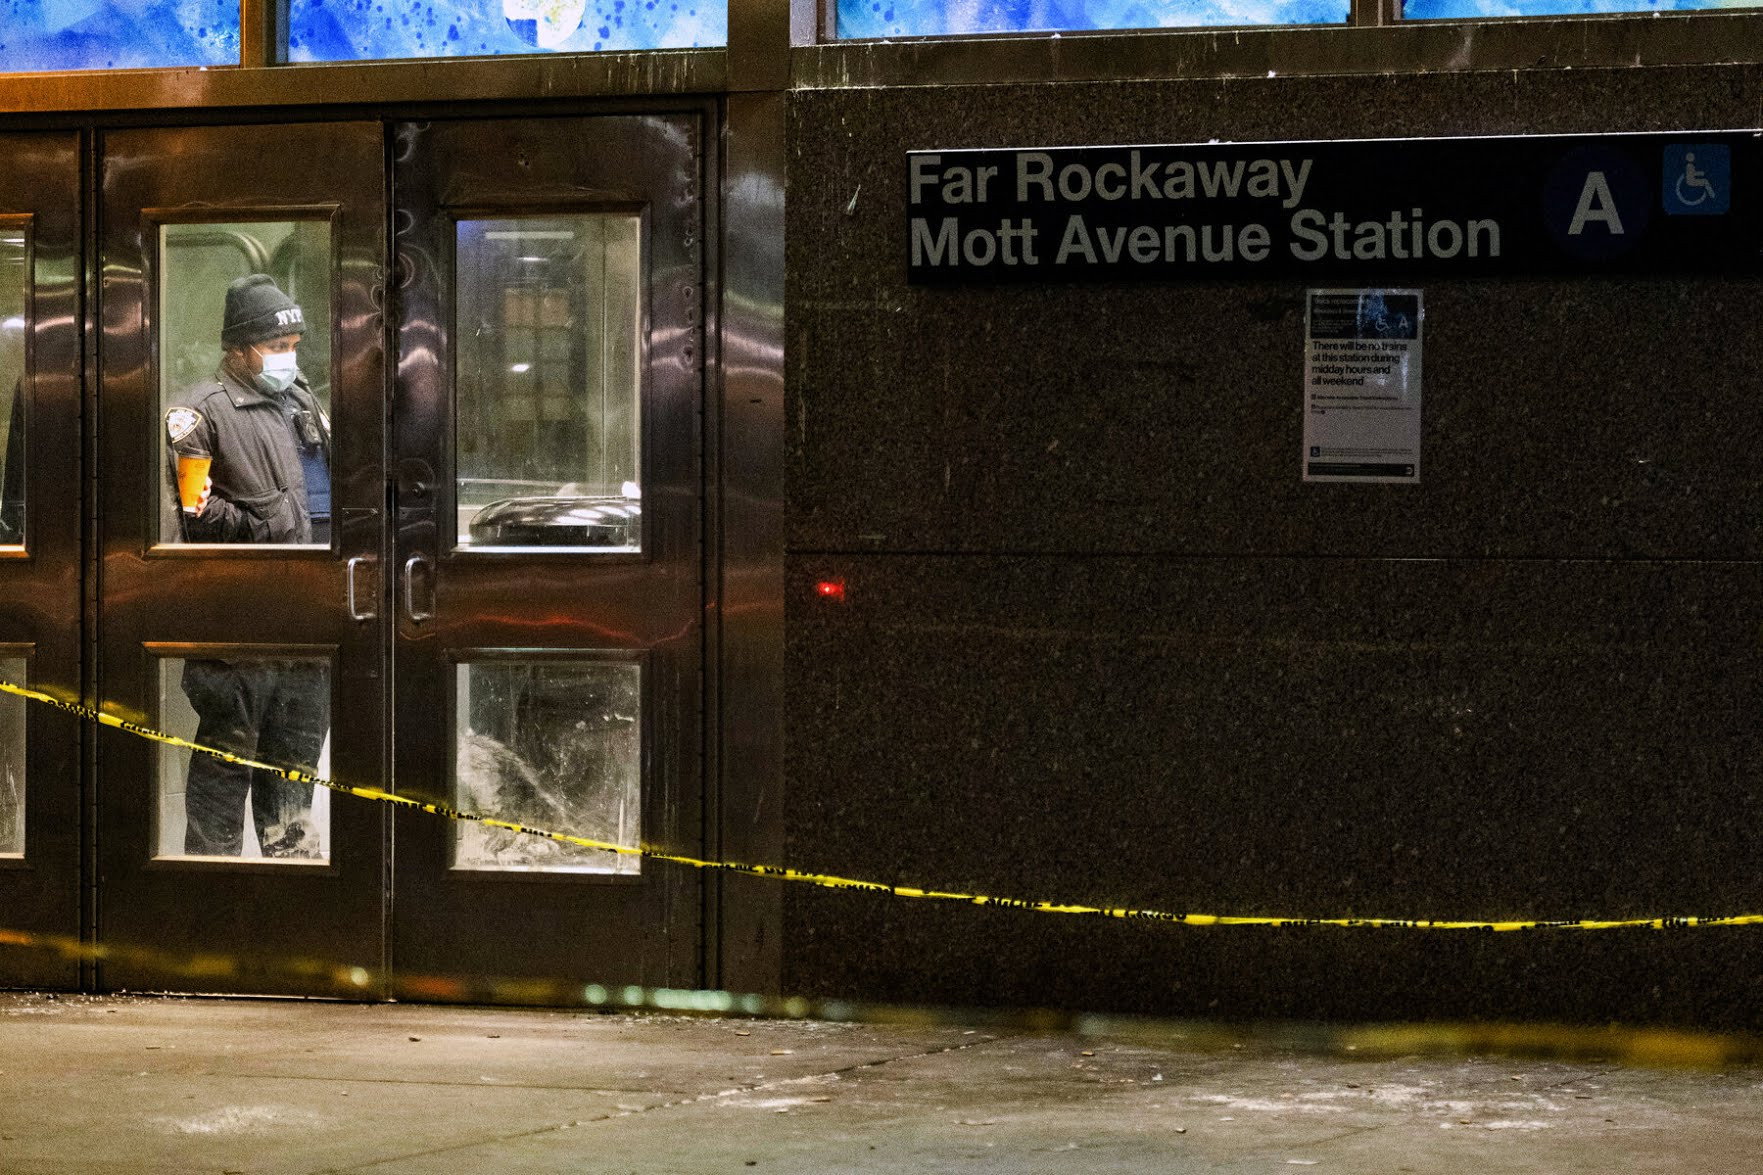 Police arrest man who carried out gory 14-hour rampage in subway train killing two and injuring others